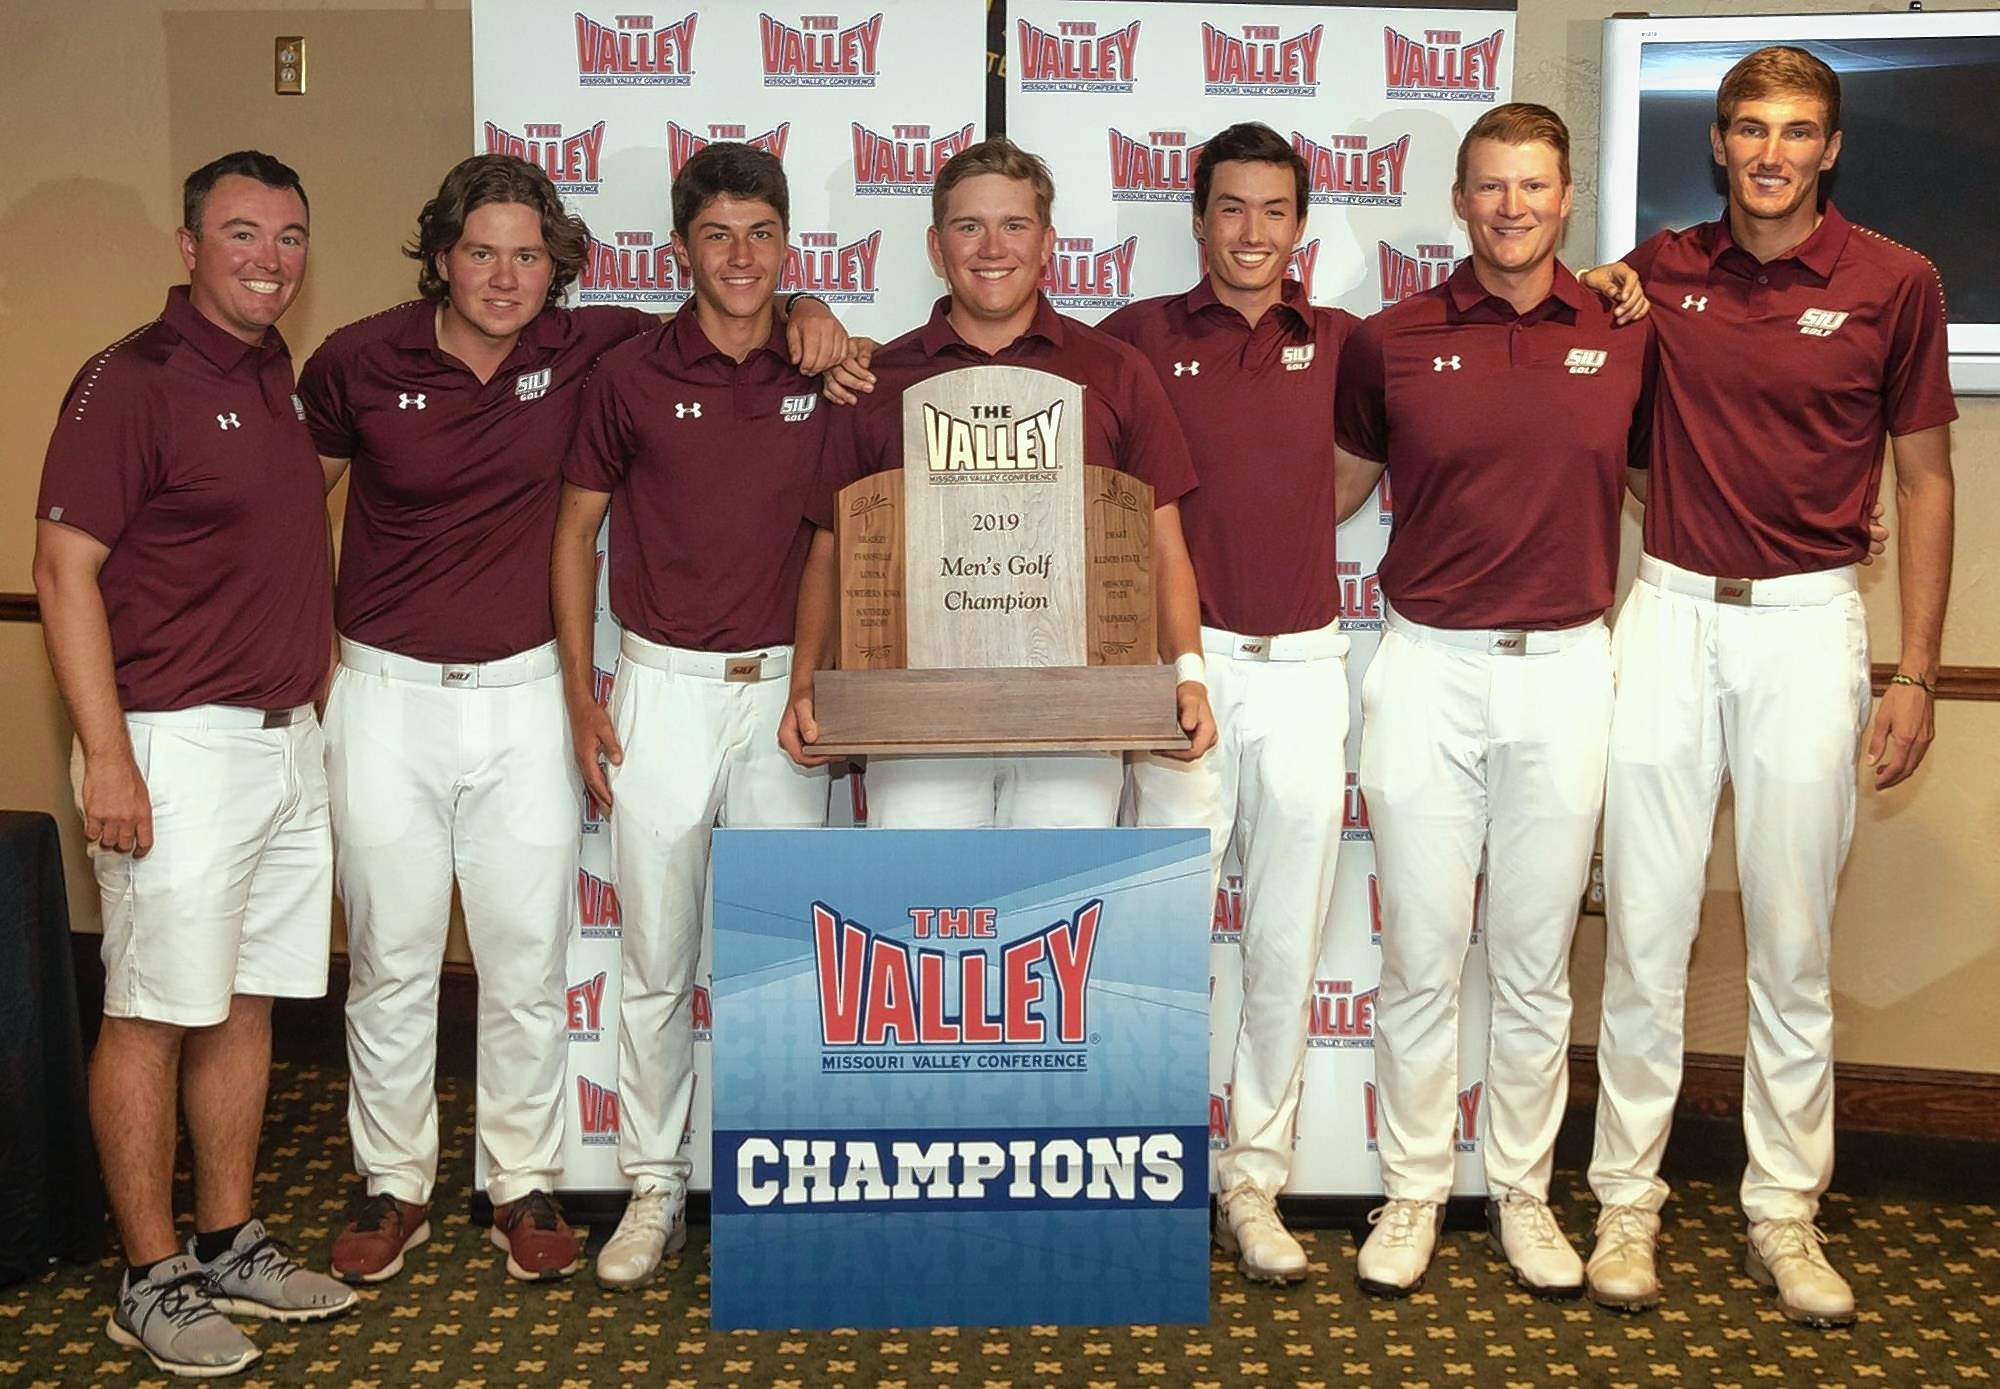 The SIU Men's Golf team captured the Missouri Valley Conference championship in tournament play Tuesday. Pictured from left: Coach Justin Fetcho, Vikar Jonasson, Matthis Besard, Peyton Wilhoit, Frankie Thomas, Luke Gannon, Hunter York.